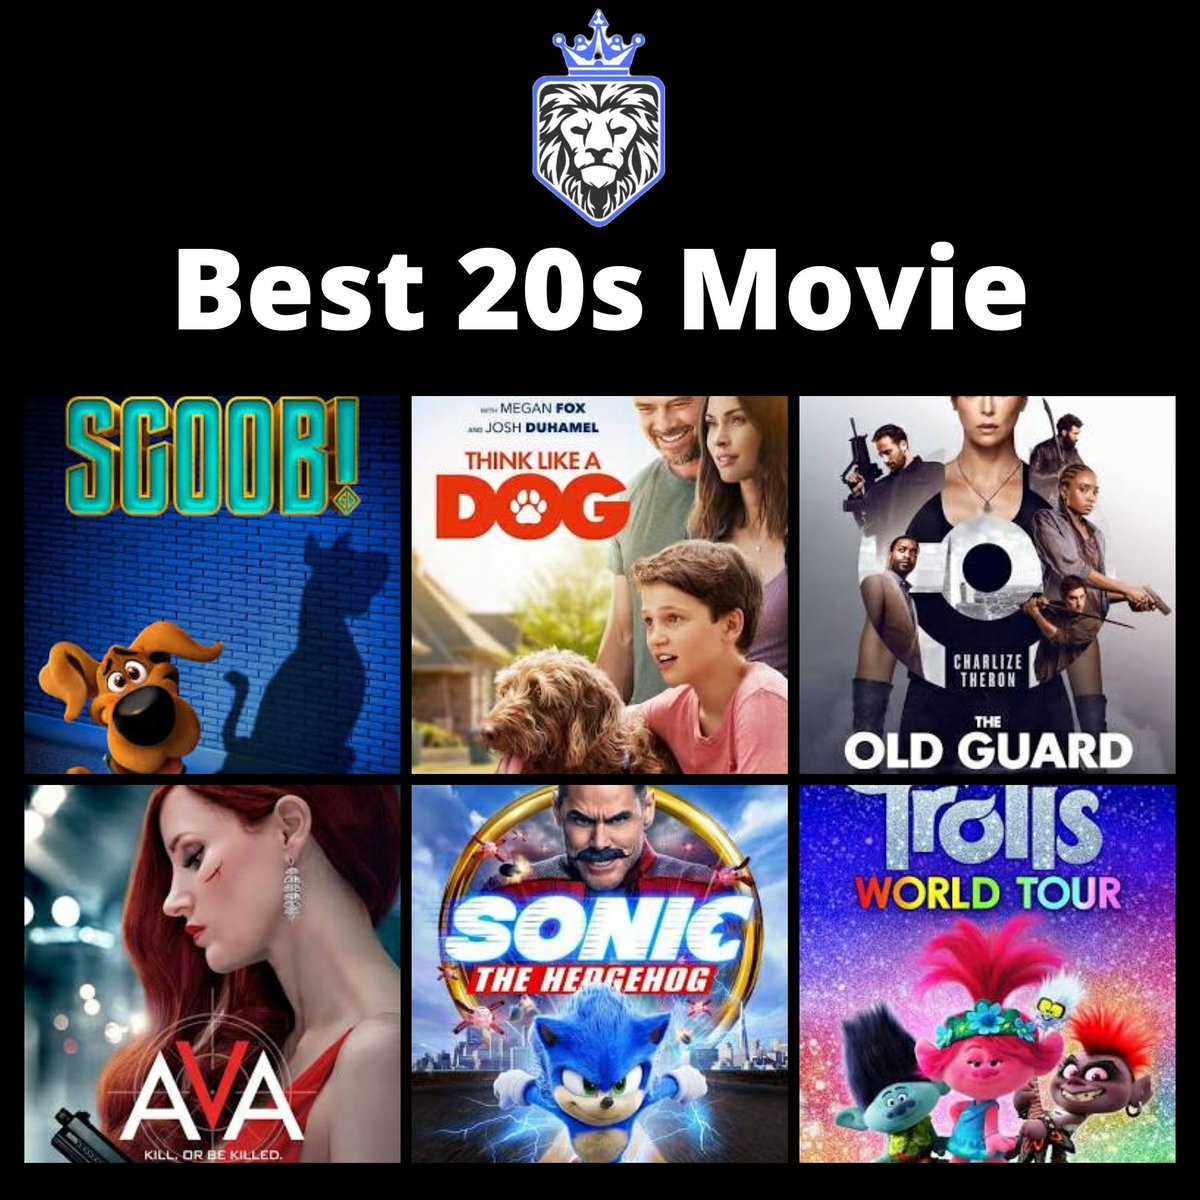 Which out of these is the best movie this year?  There hasn't been many good ones this year but out of these, which did you like best.  #movies #movie #Movies2020 #films #film #bestmovie #bestmovies #bestfilm #bestfilms #whatisbest #2020 #whichmovie #whichfilm #scoob #ava #sonic https://t.co/GrTl2Ykhmp